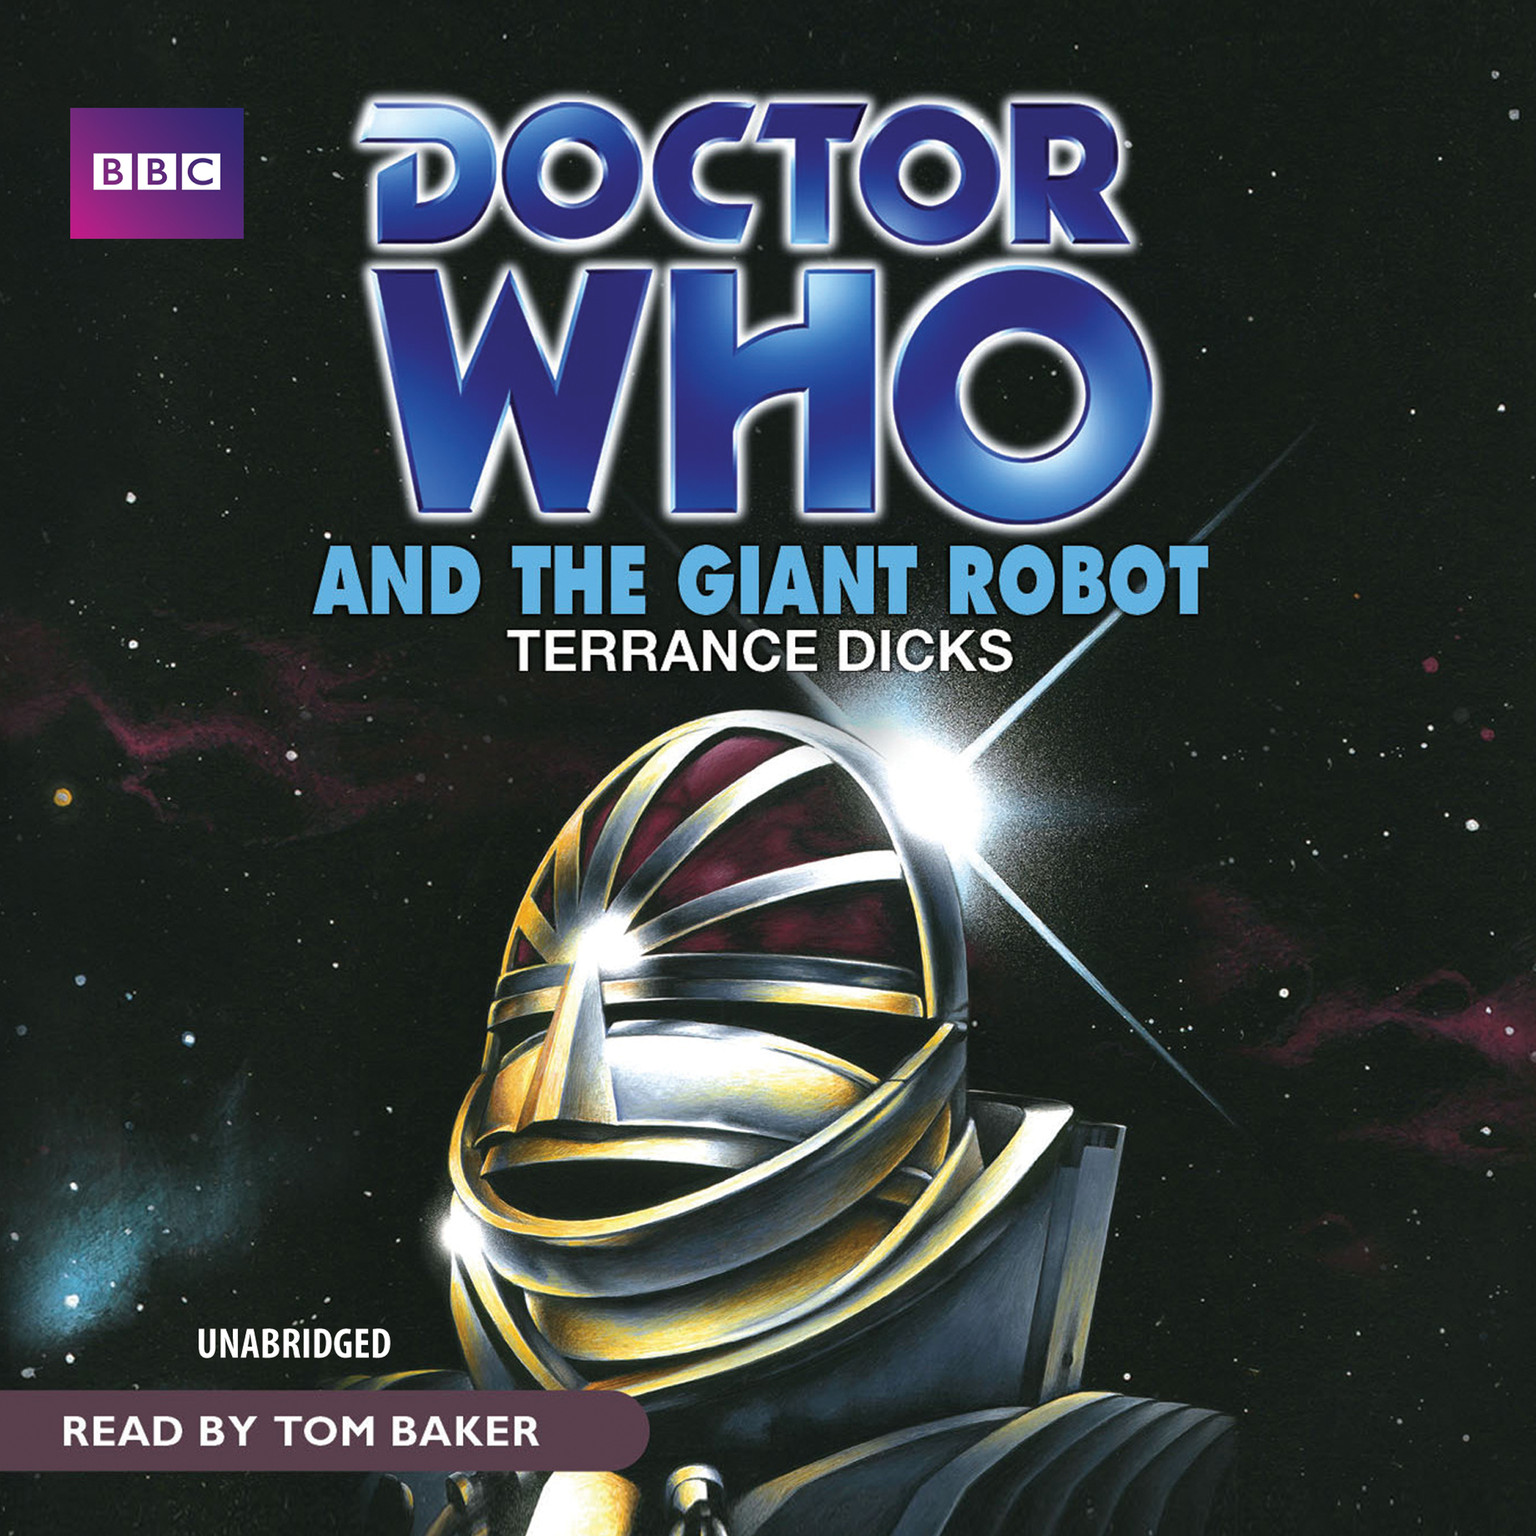 Printable Doctor Who and the Giant Robot Audiobook Cover Art